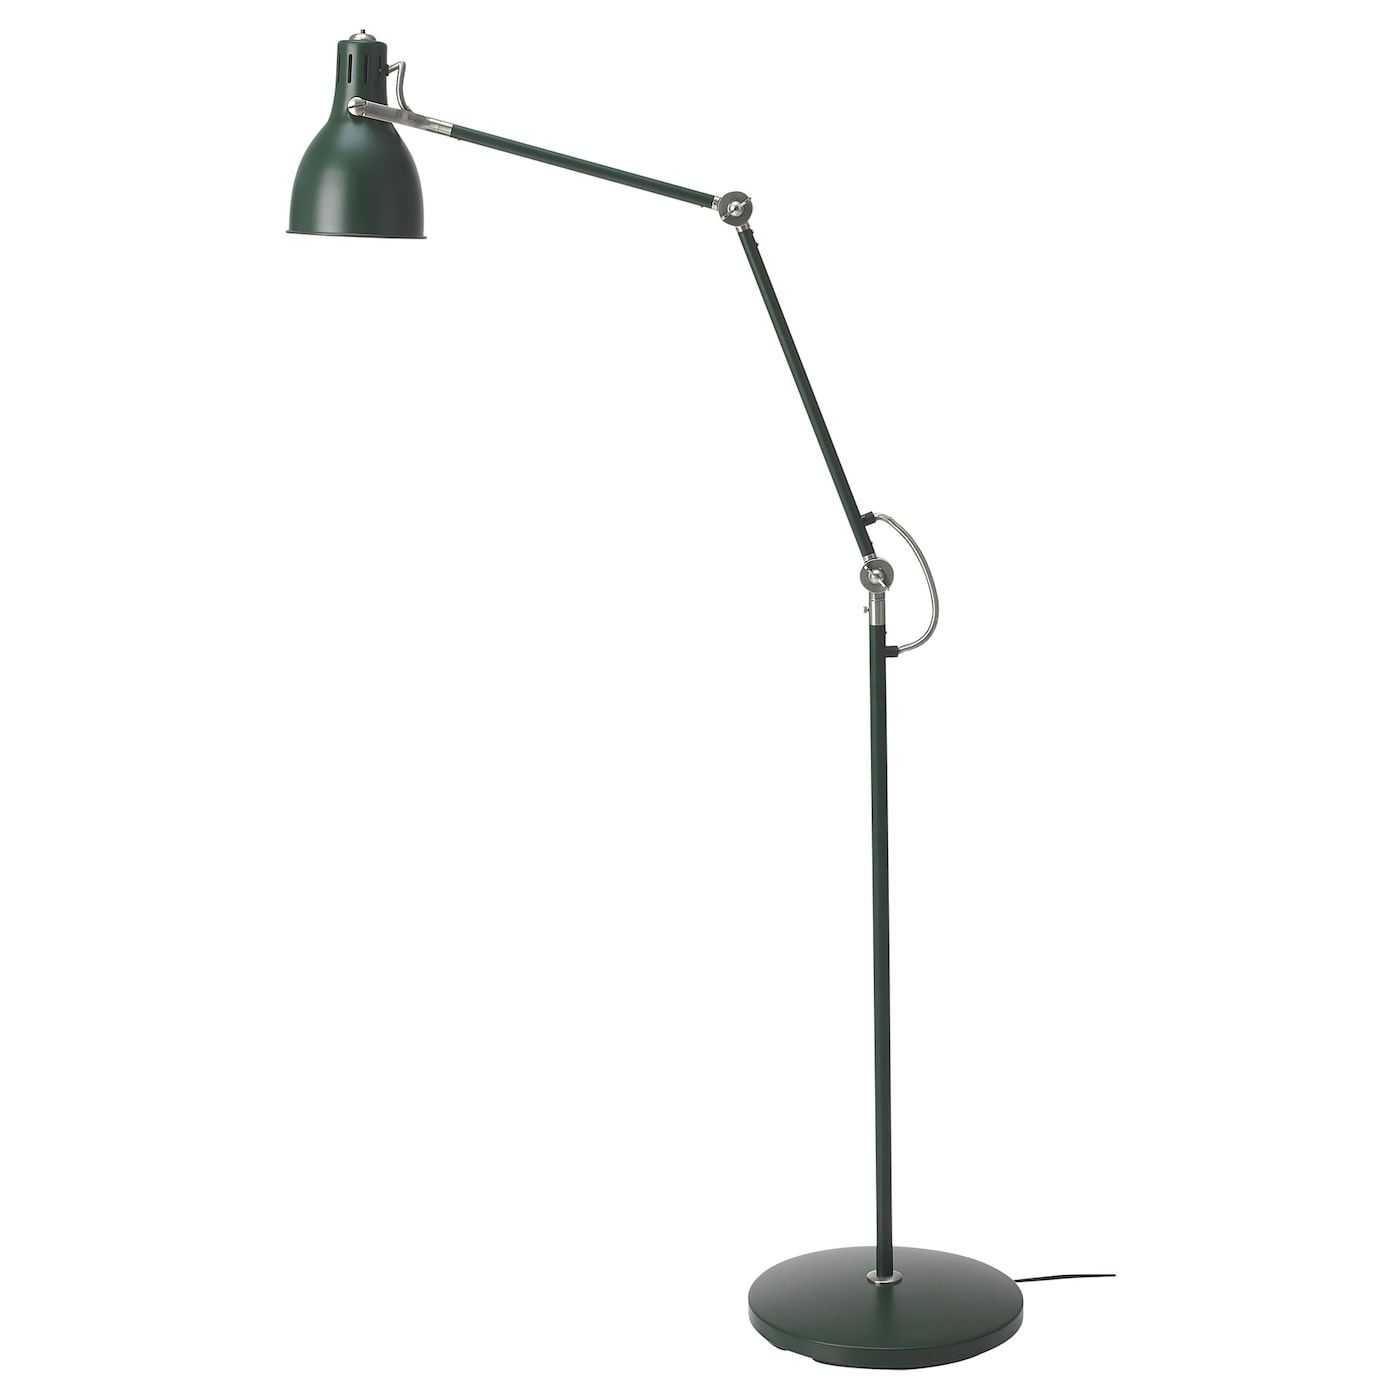 Ikea Arod Green Floor Reading Lamp With